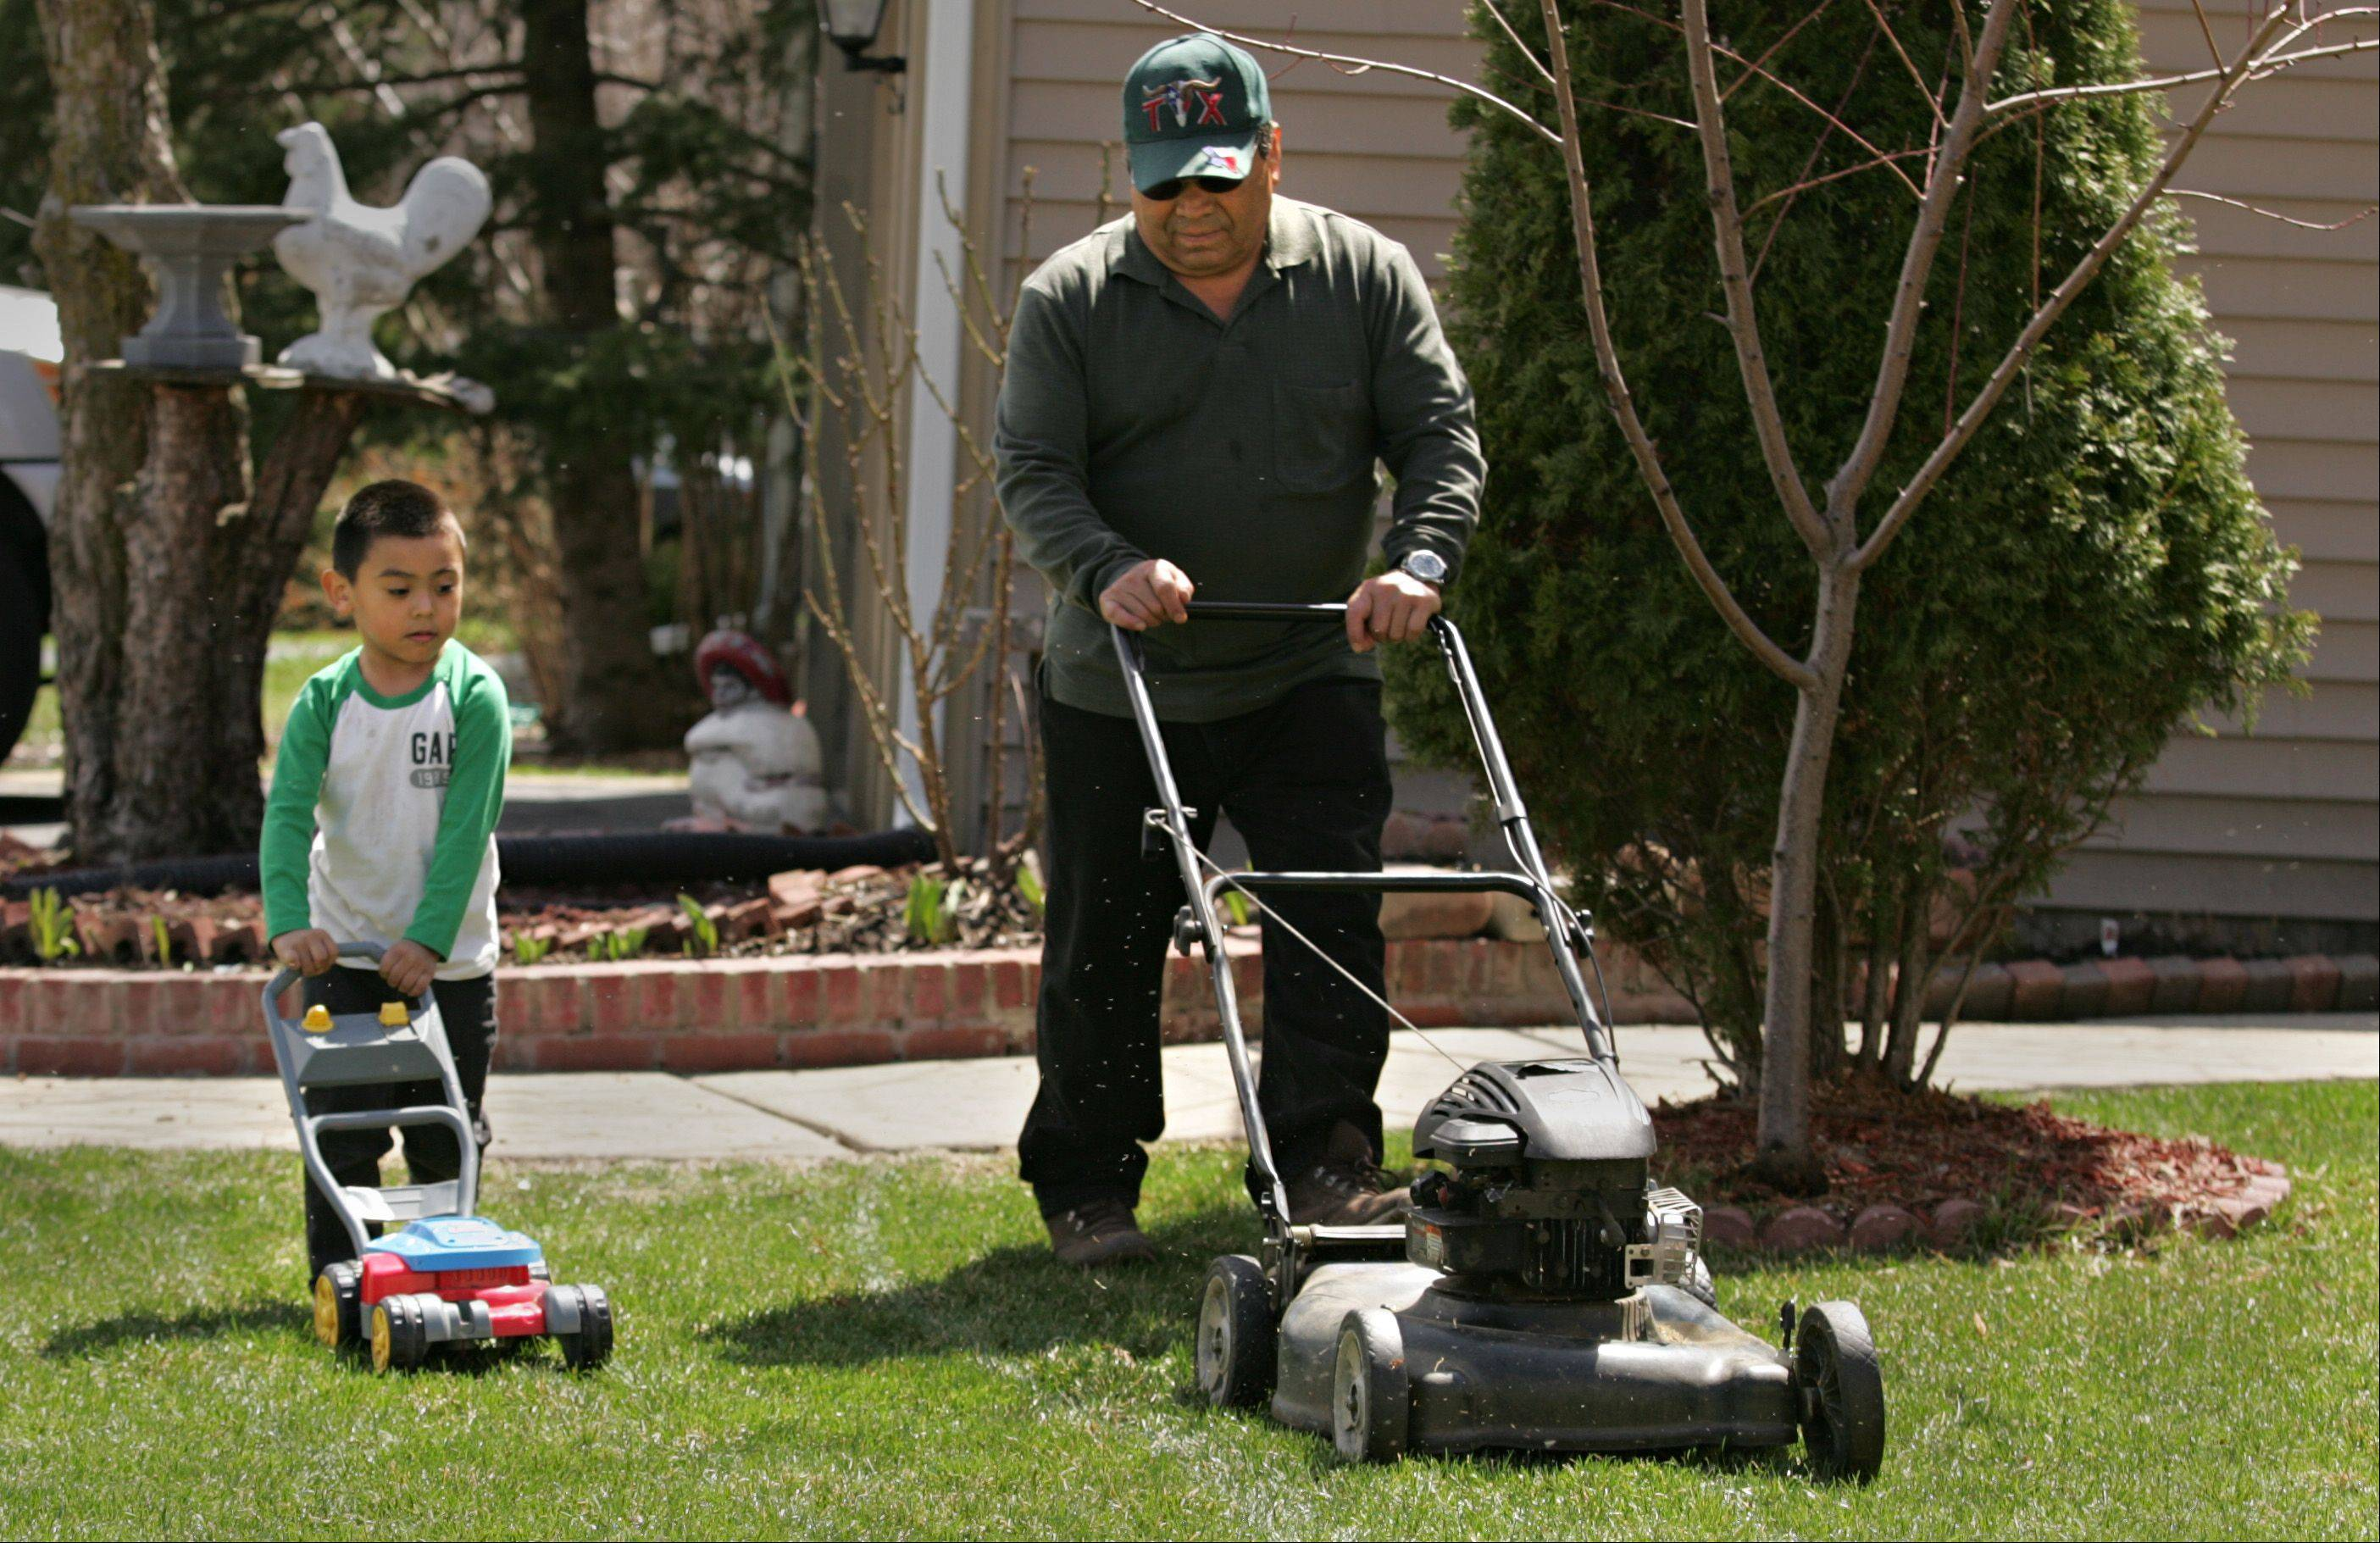 Taking advantage of weather that actually looks and feels like spring, Miguel Bucio and his grandson Angel, 3, mow Miguel's lawn together Tuesday afternoon on Elgin's west side. Angel followed every step alongside his grandfather, practicing for the day when he would run the larger, real thing.